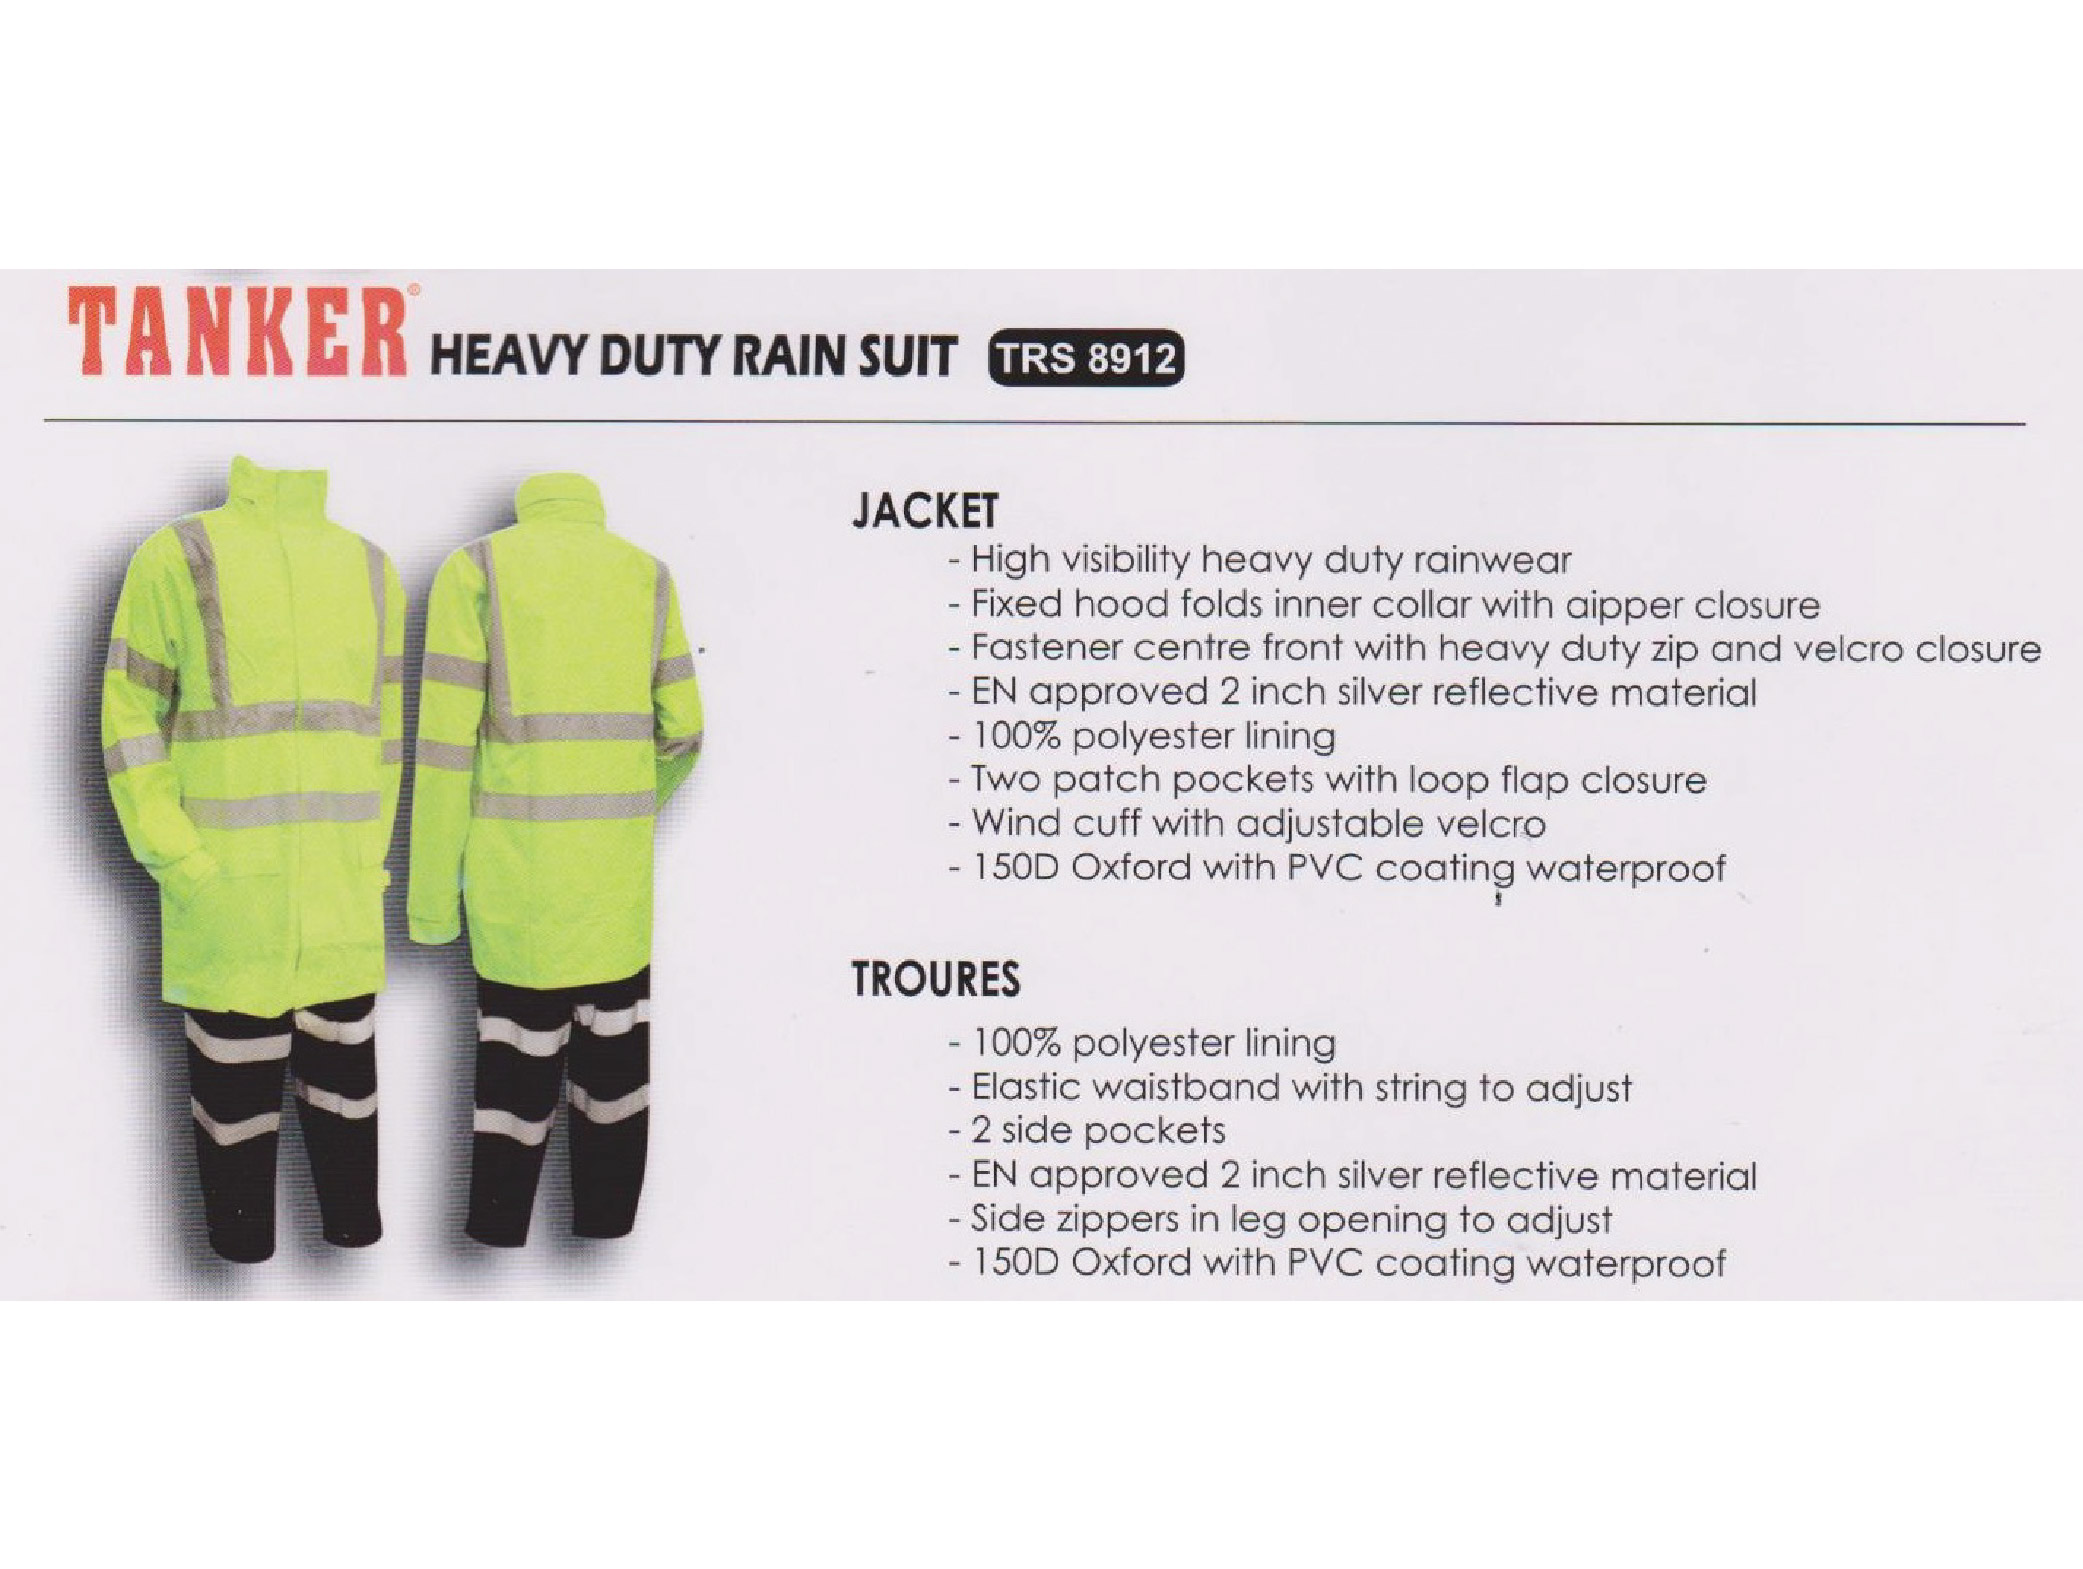 Tanker Heavy Duty Rain Suit - TRS 8912